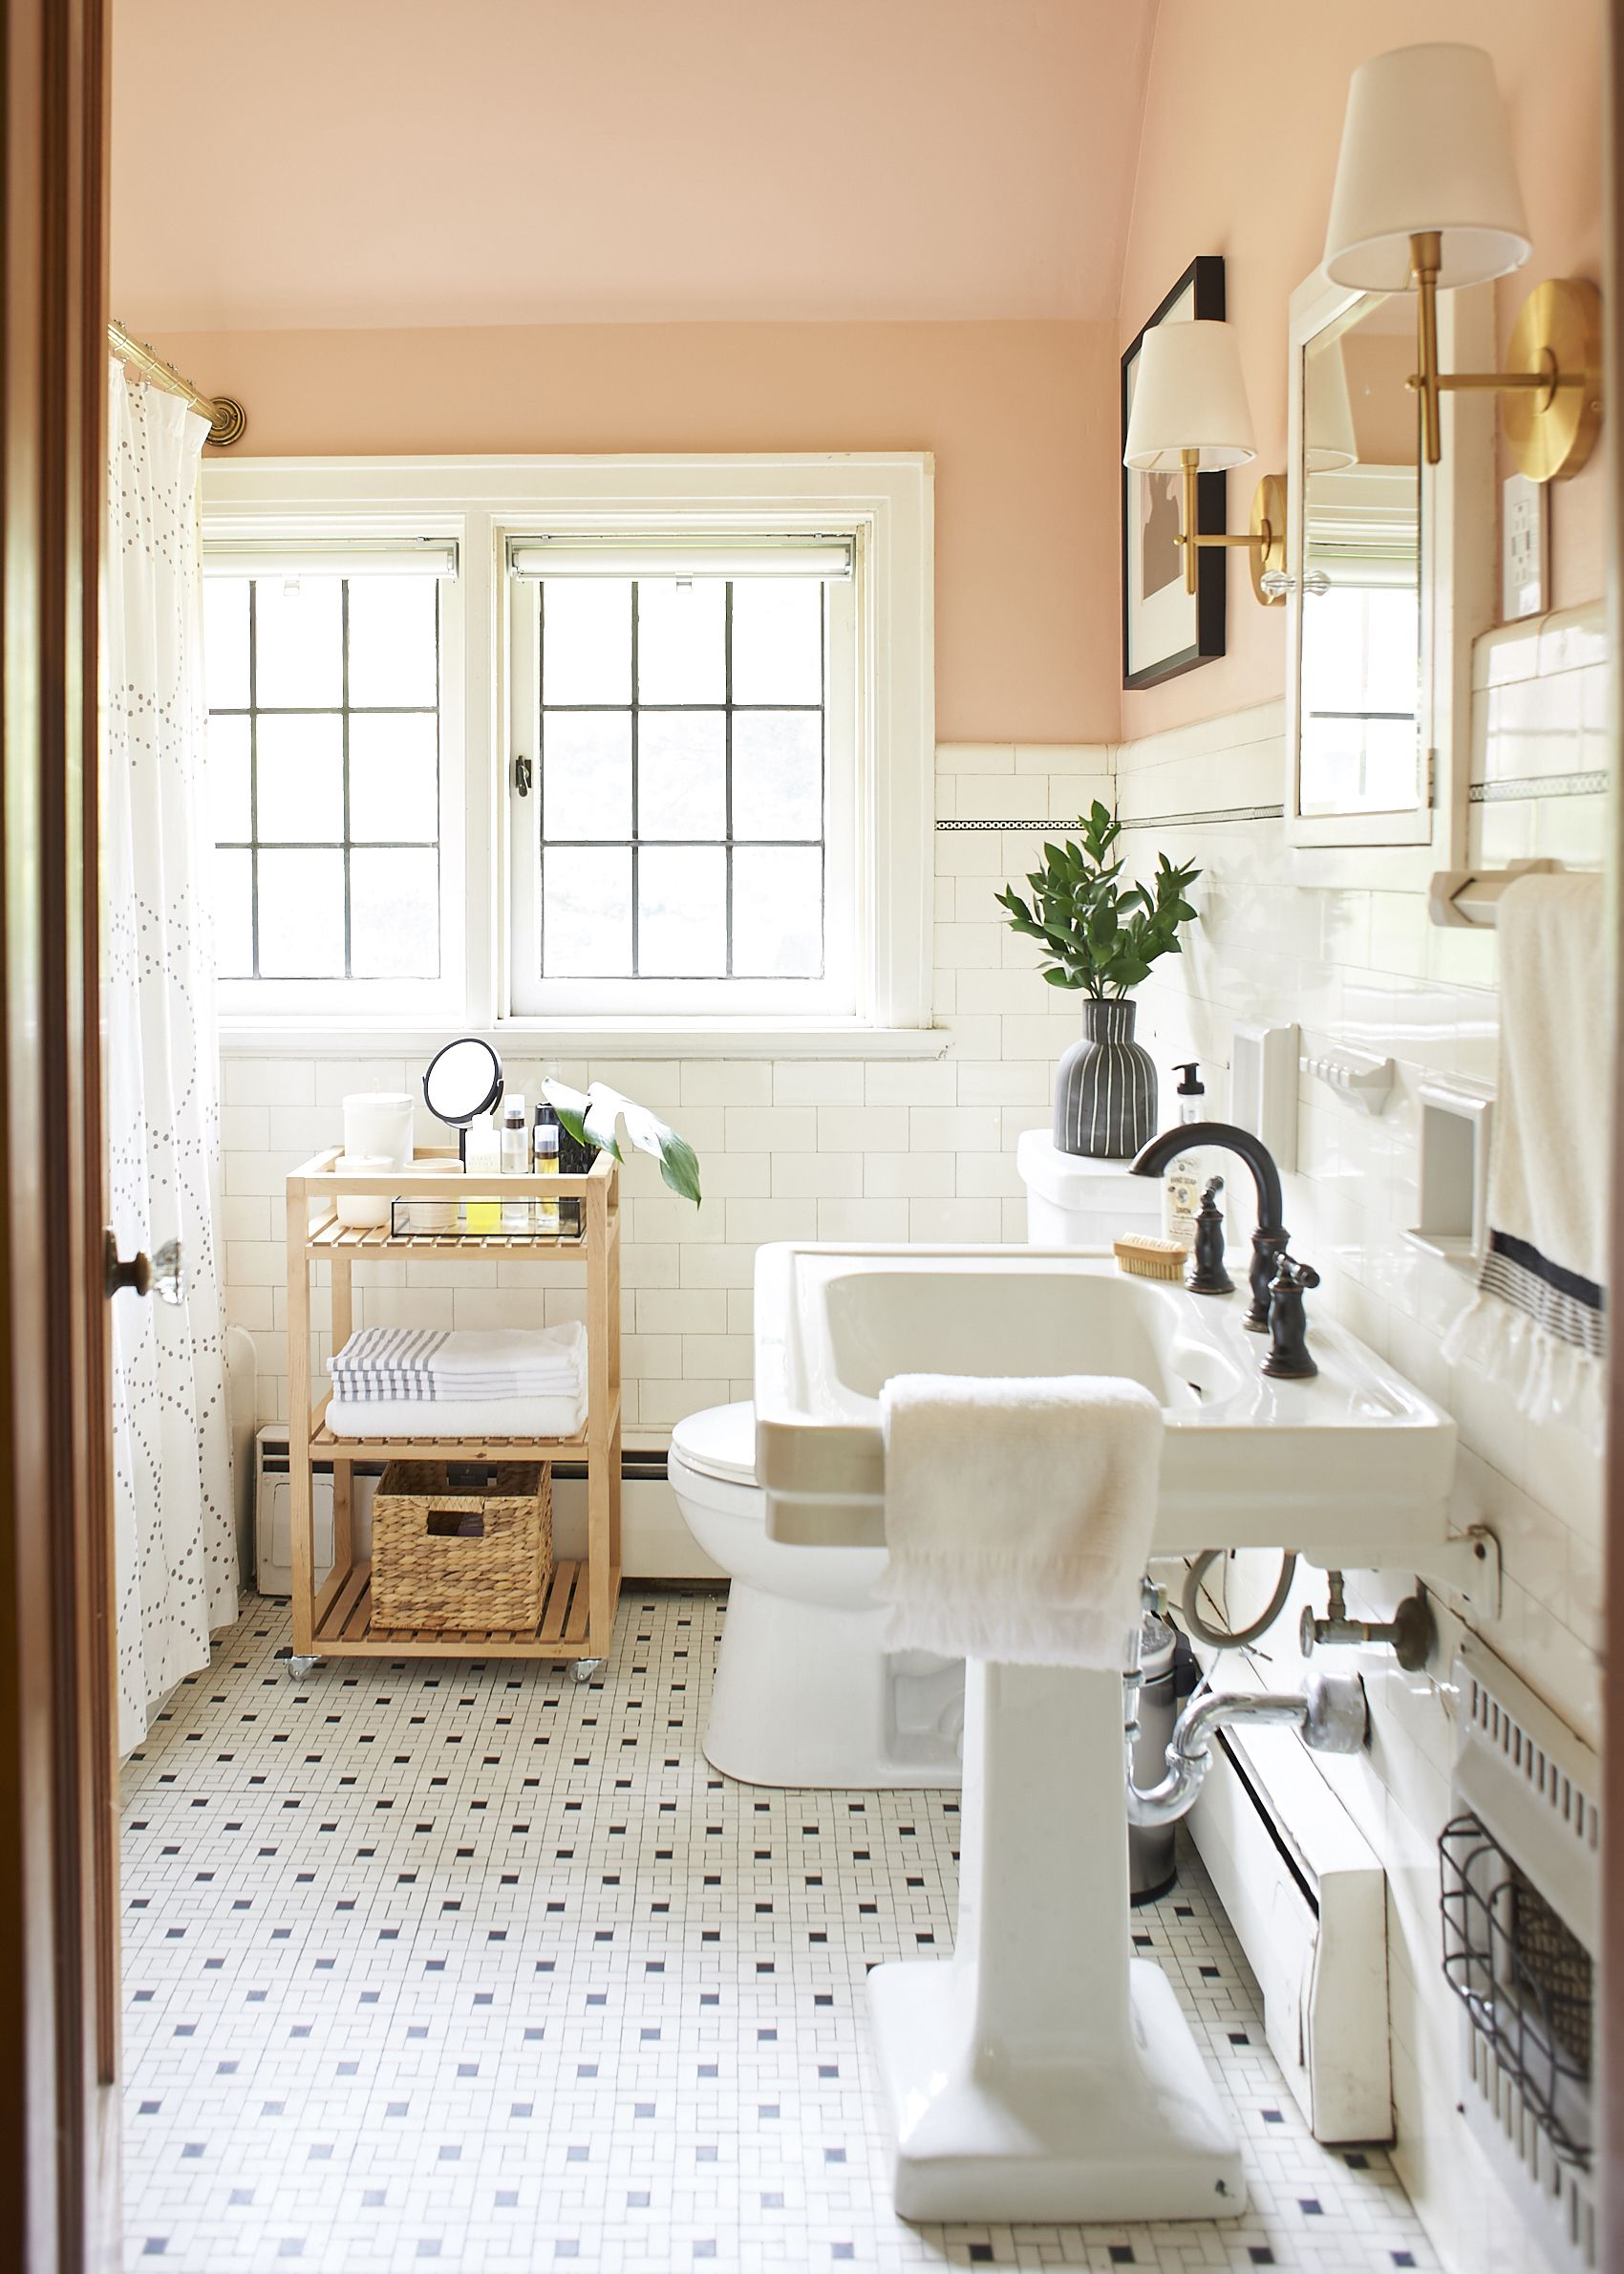 Design Sponge Bathrooms Blush And Moody Tones In A Pittsburgh Home For Photographers Via